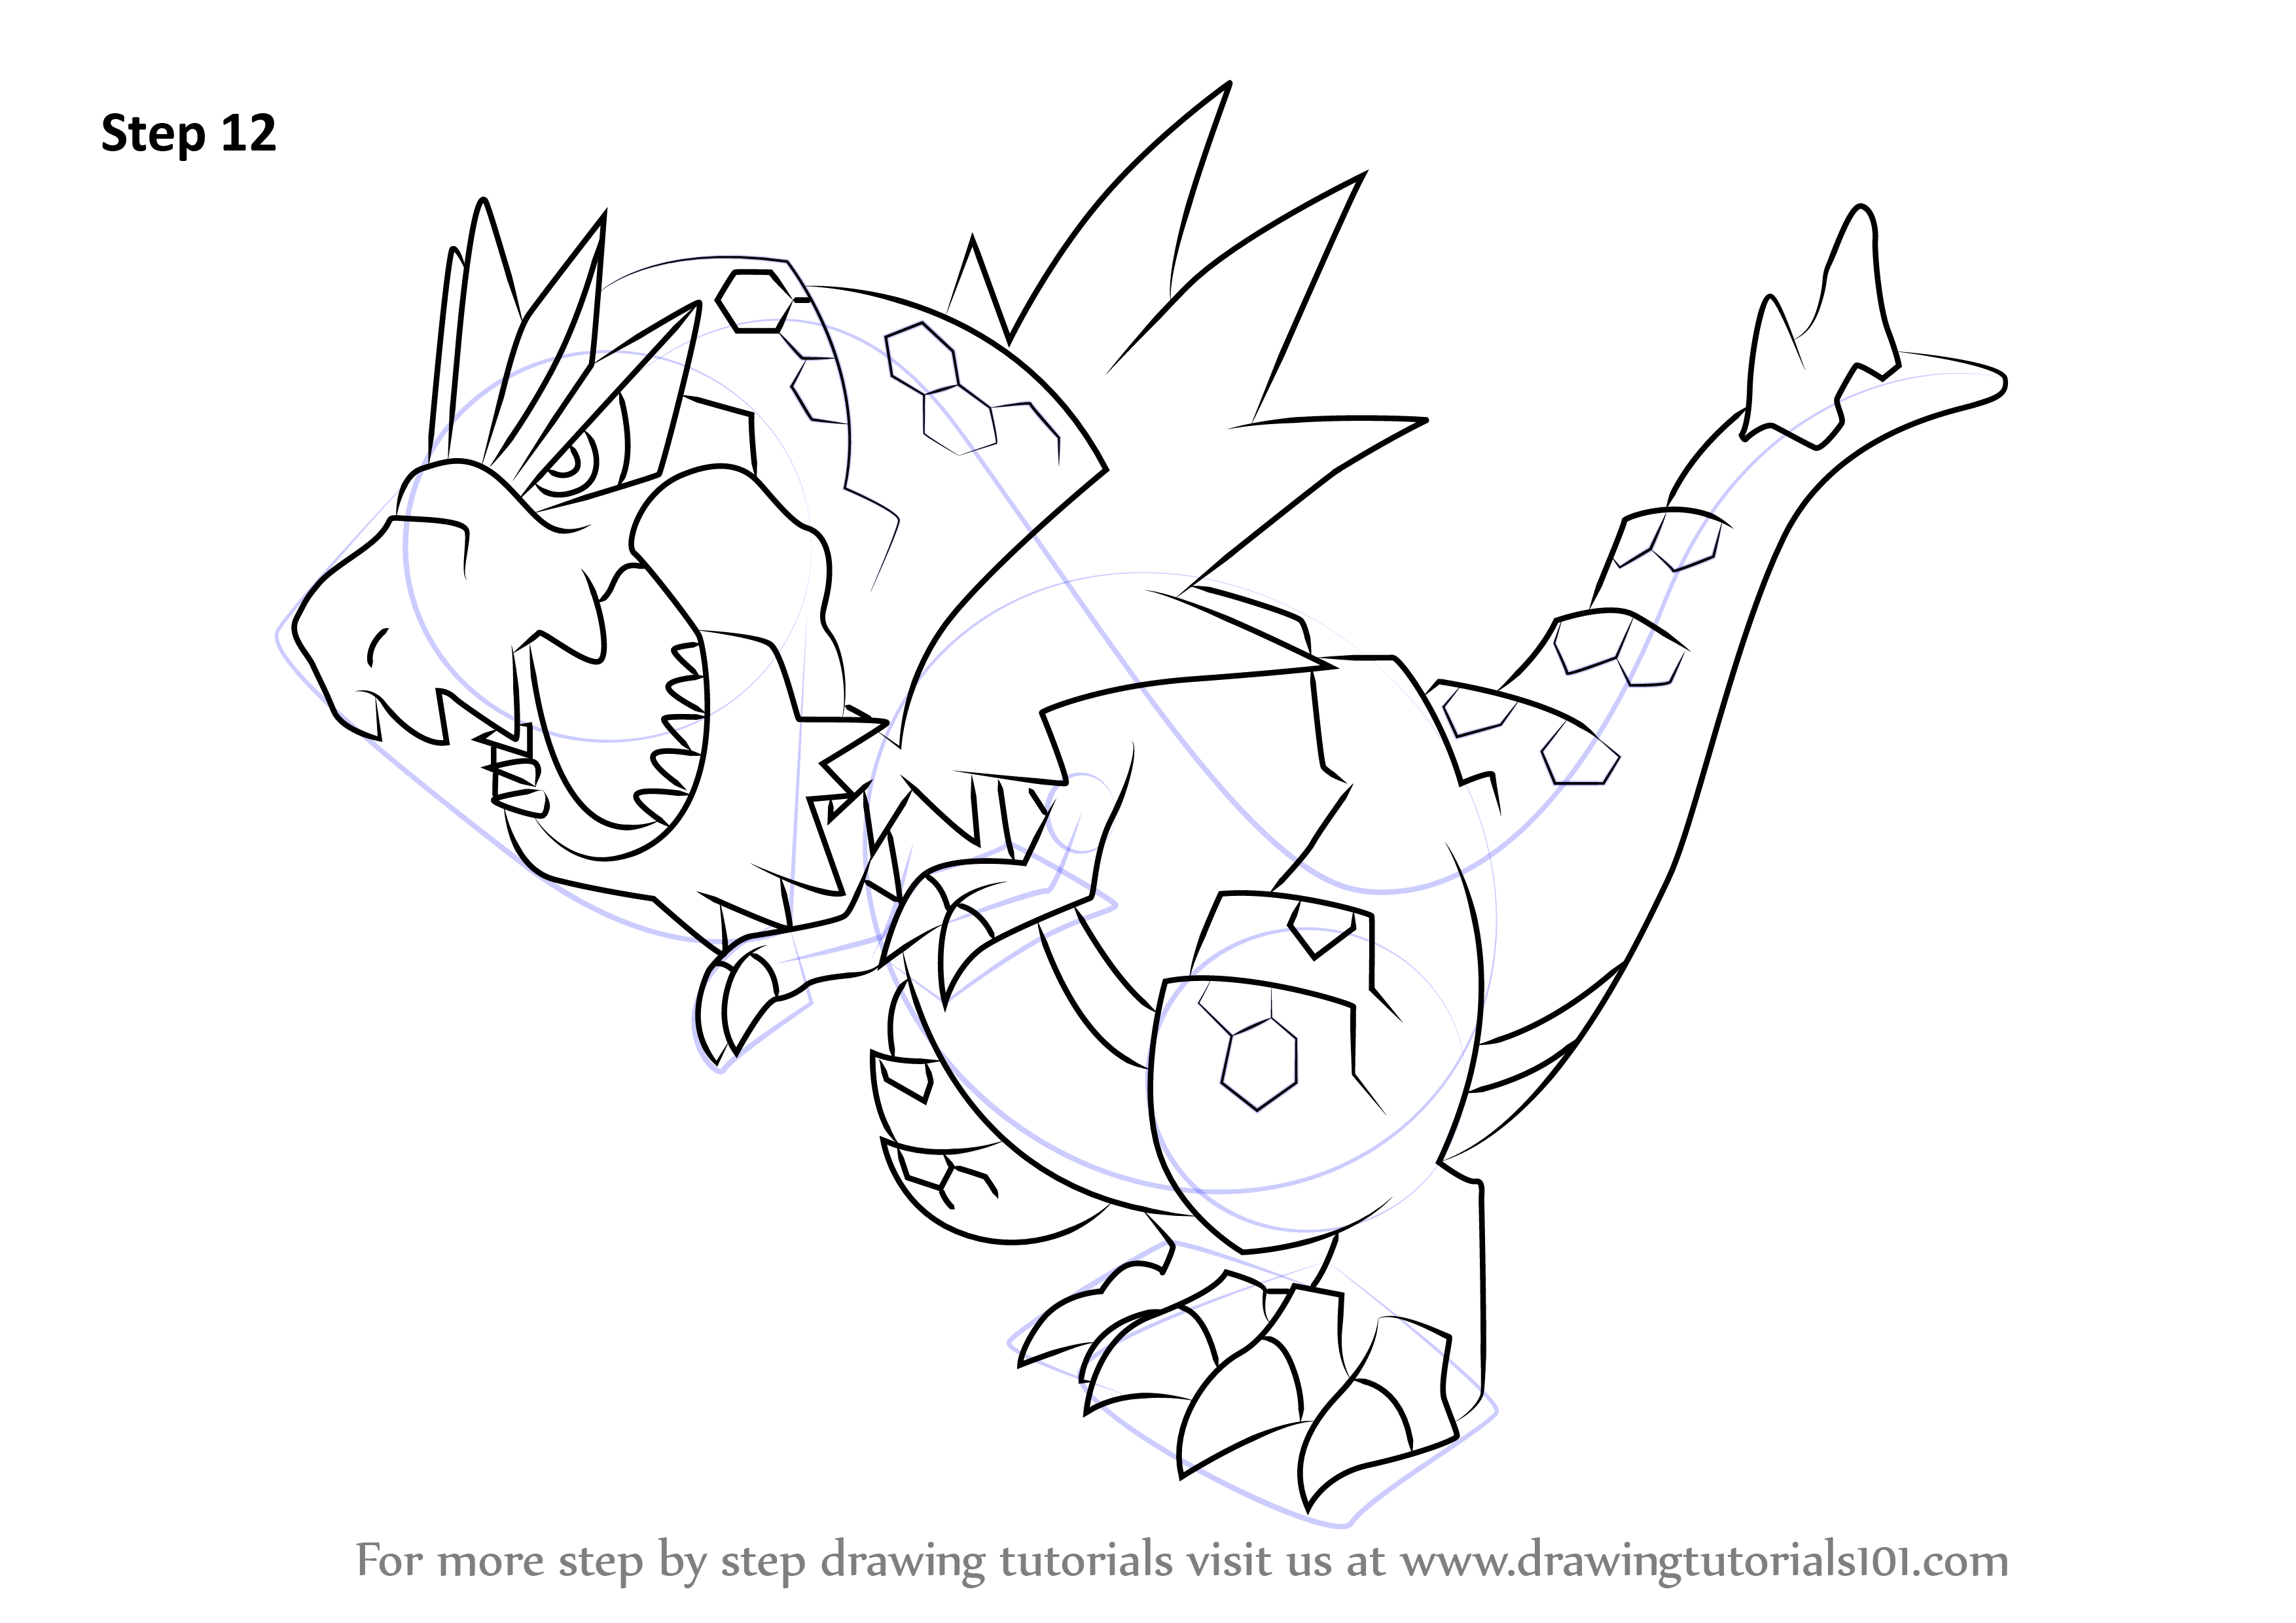 Learn How to Draw Tyrantrum from